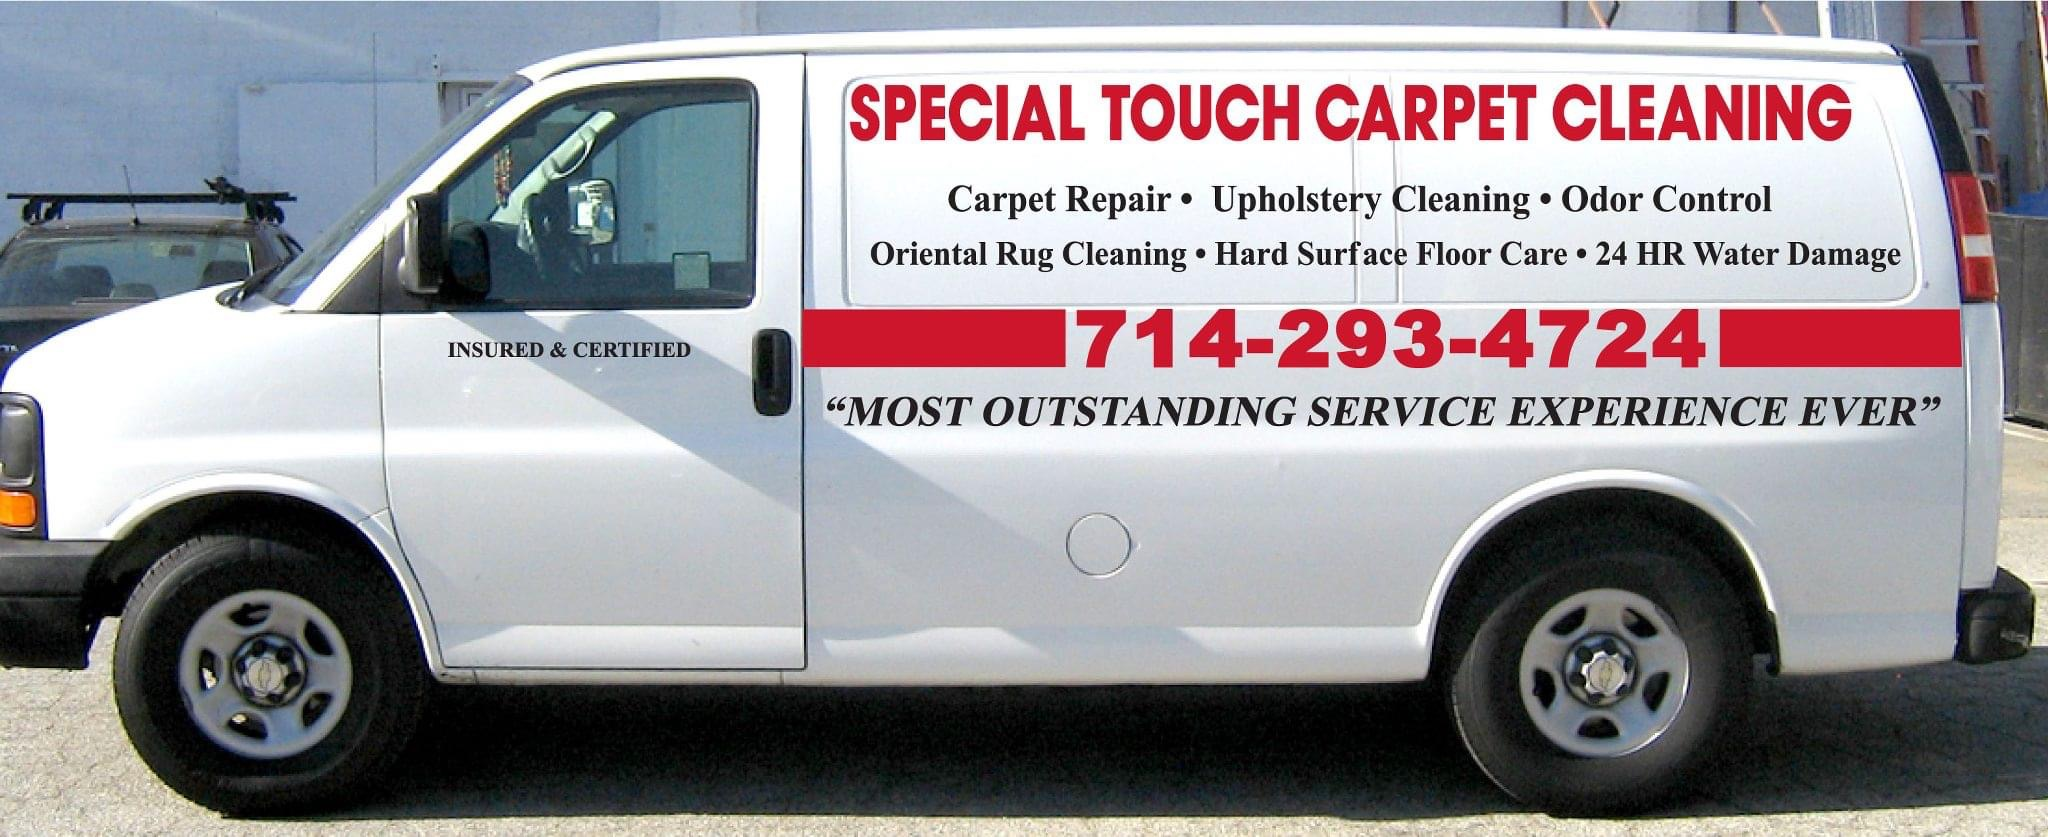 Special Touch Carpet Cleaning